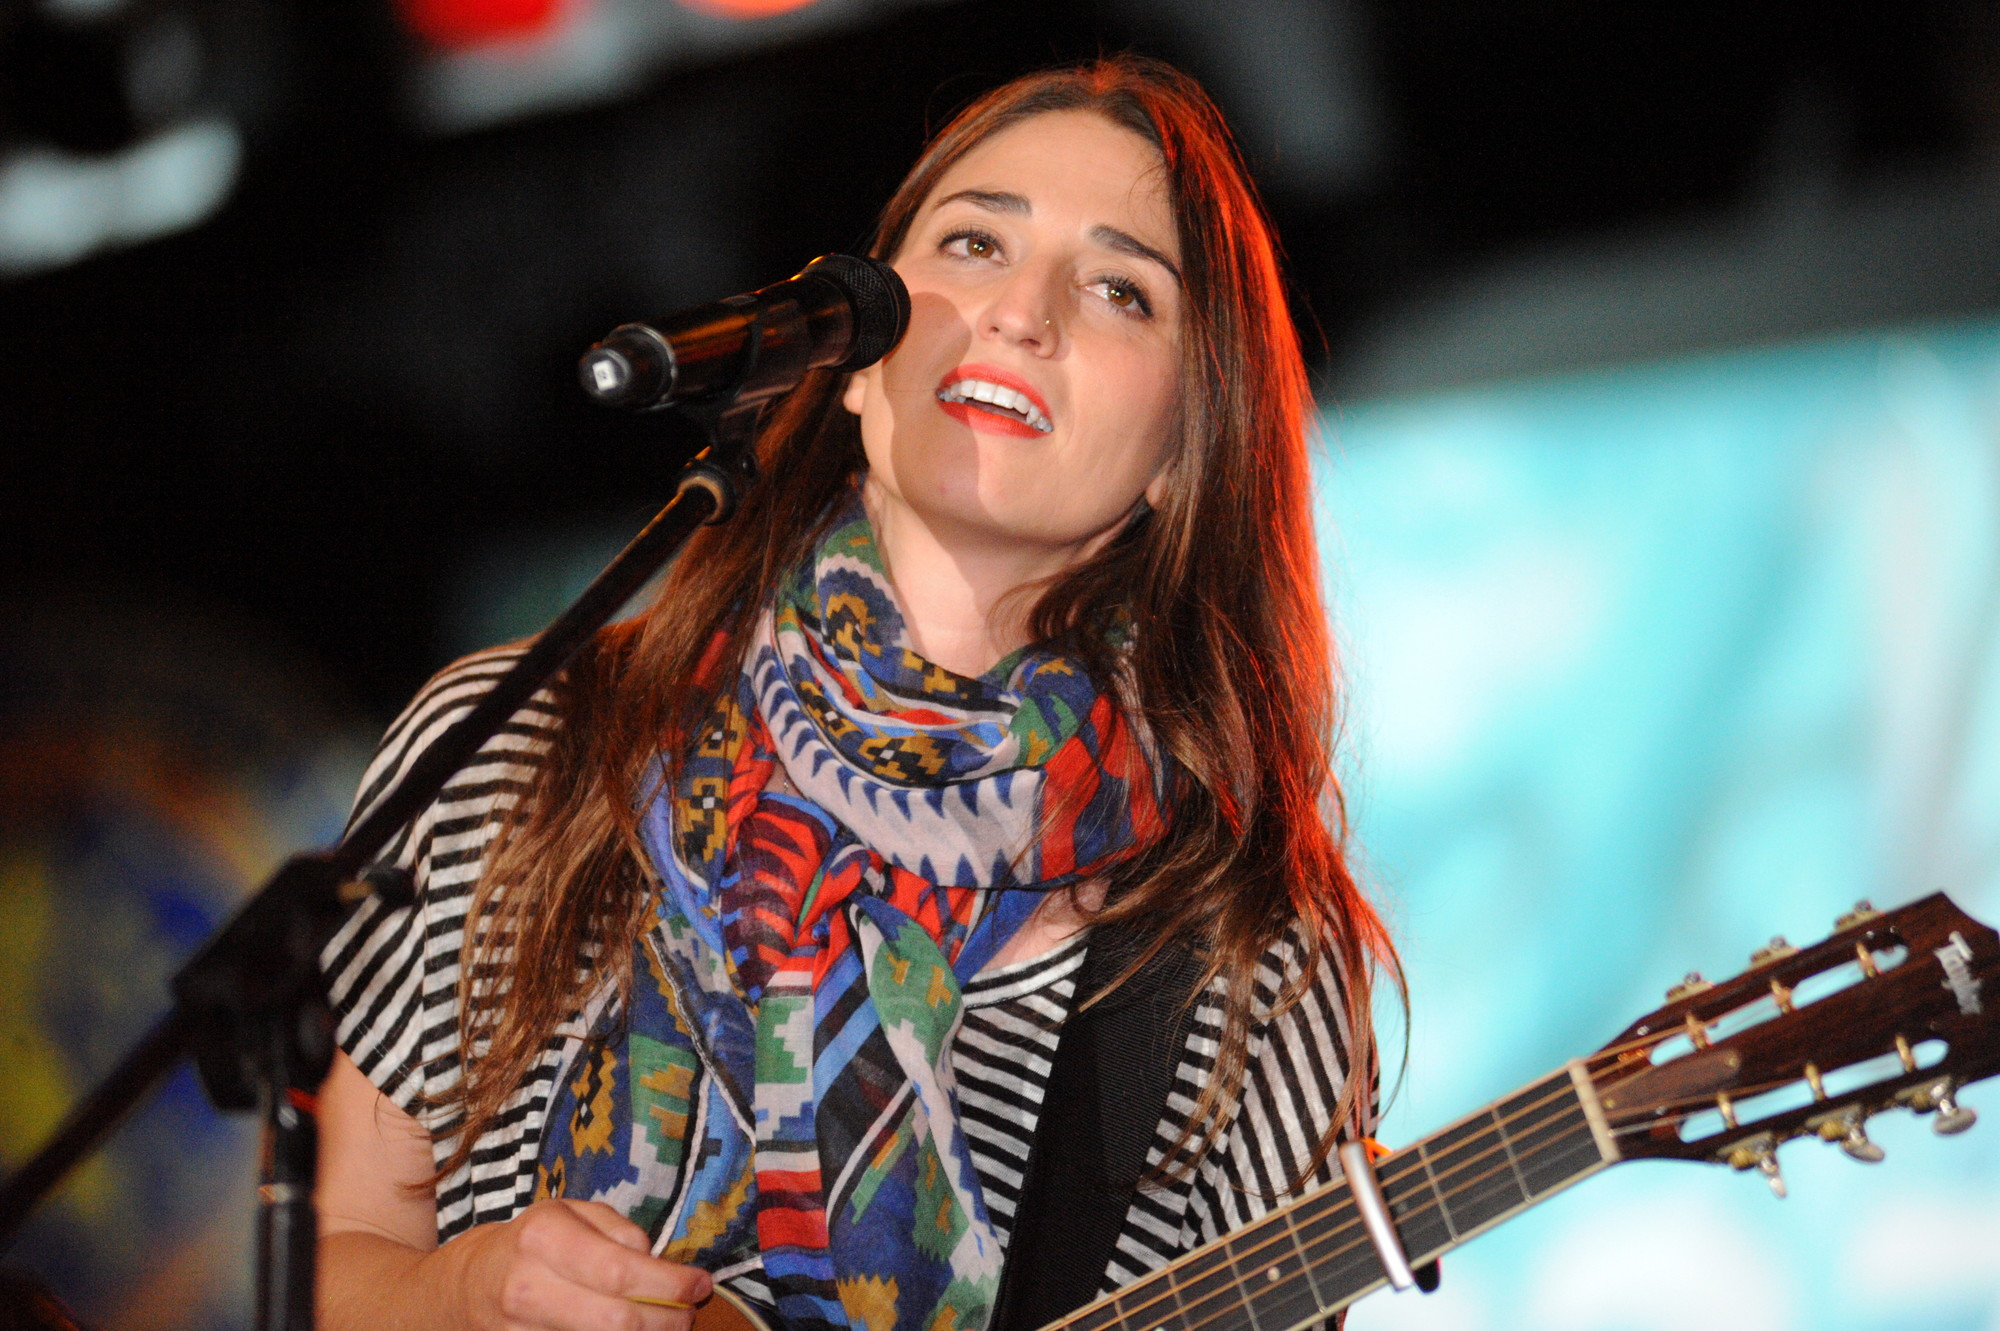 Singer-songwriter Sara Bareilles entertained a large crowd at dusk.